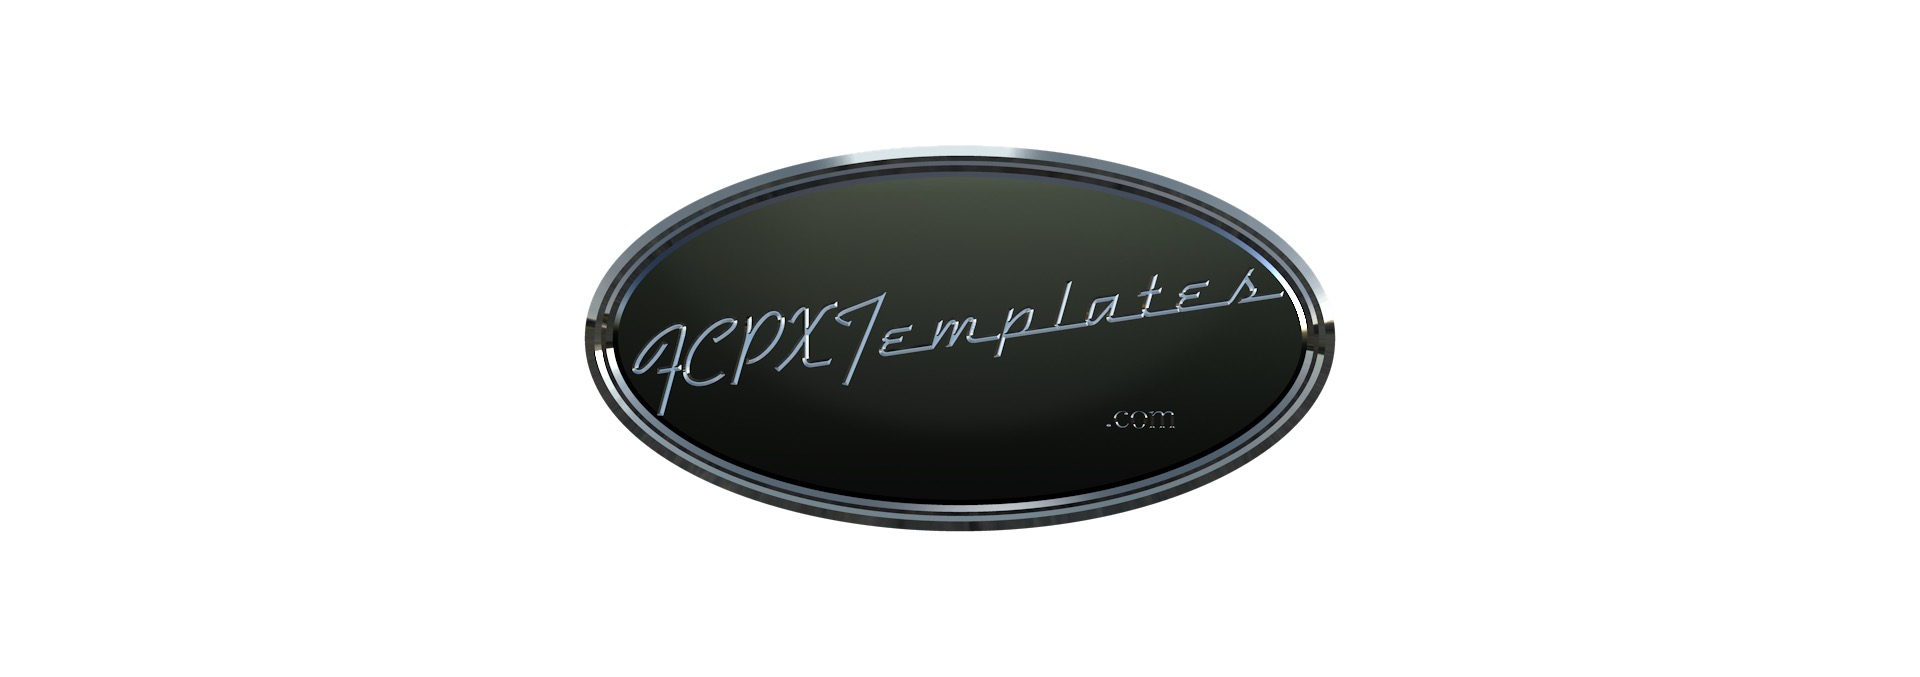 FCPXTemplates badge